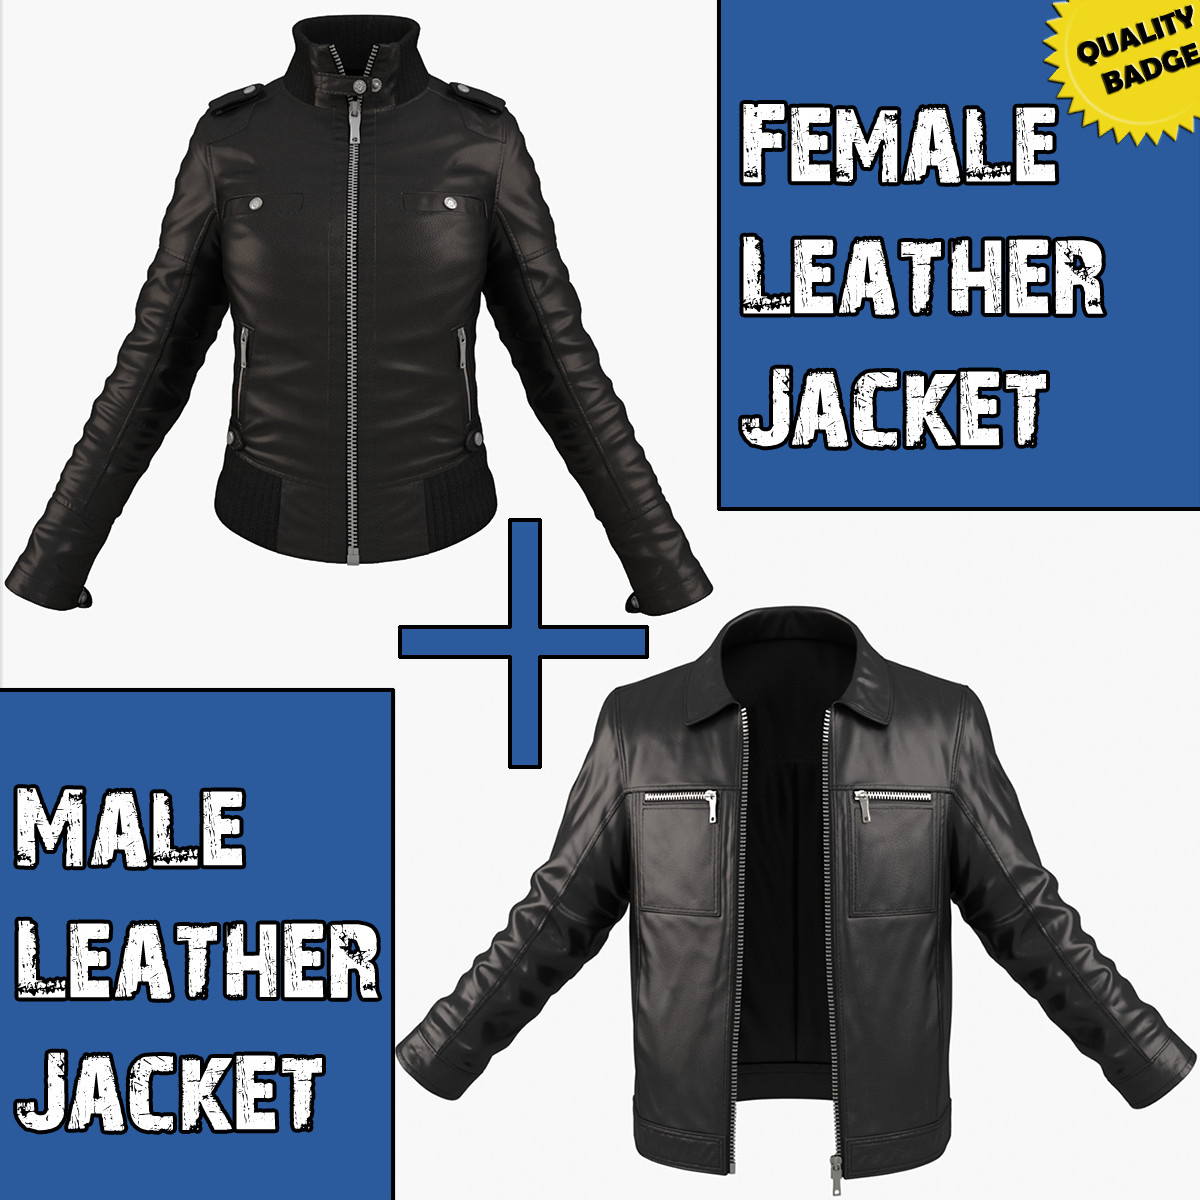 jackets_pack.bmp